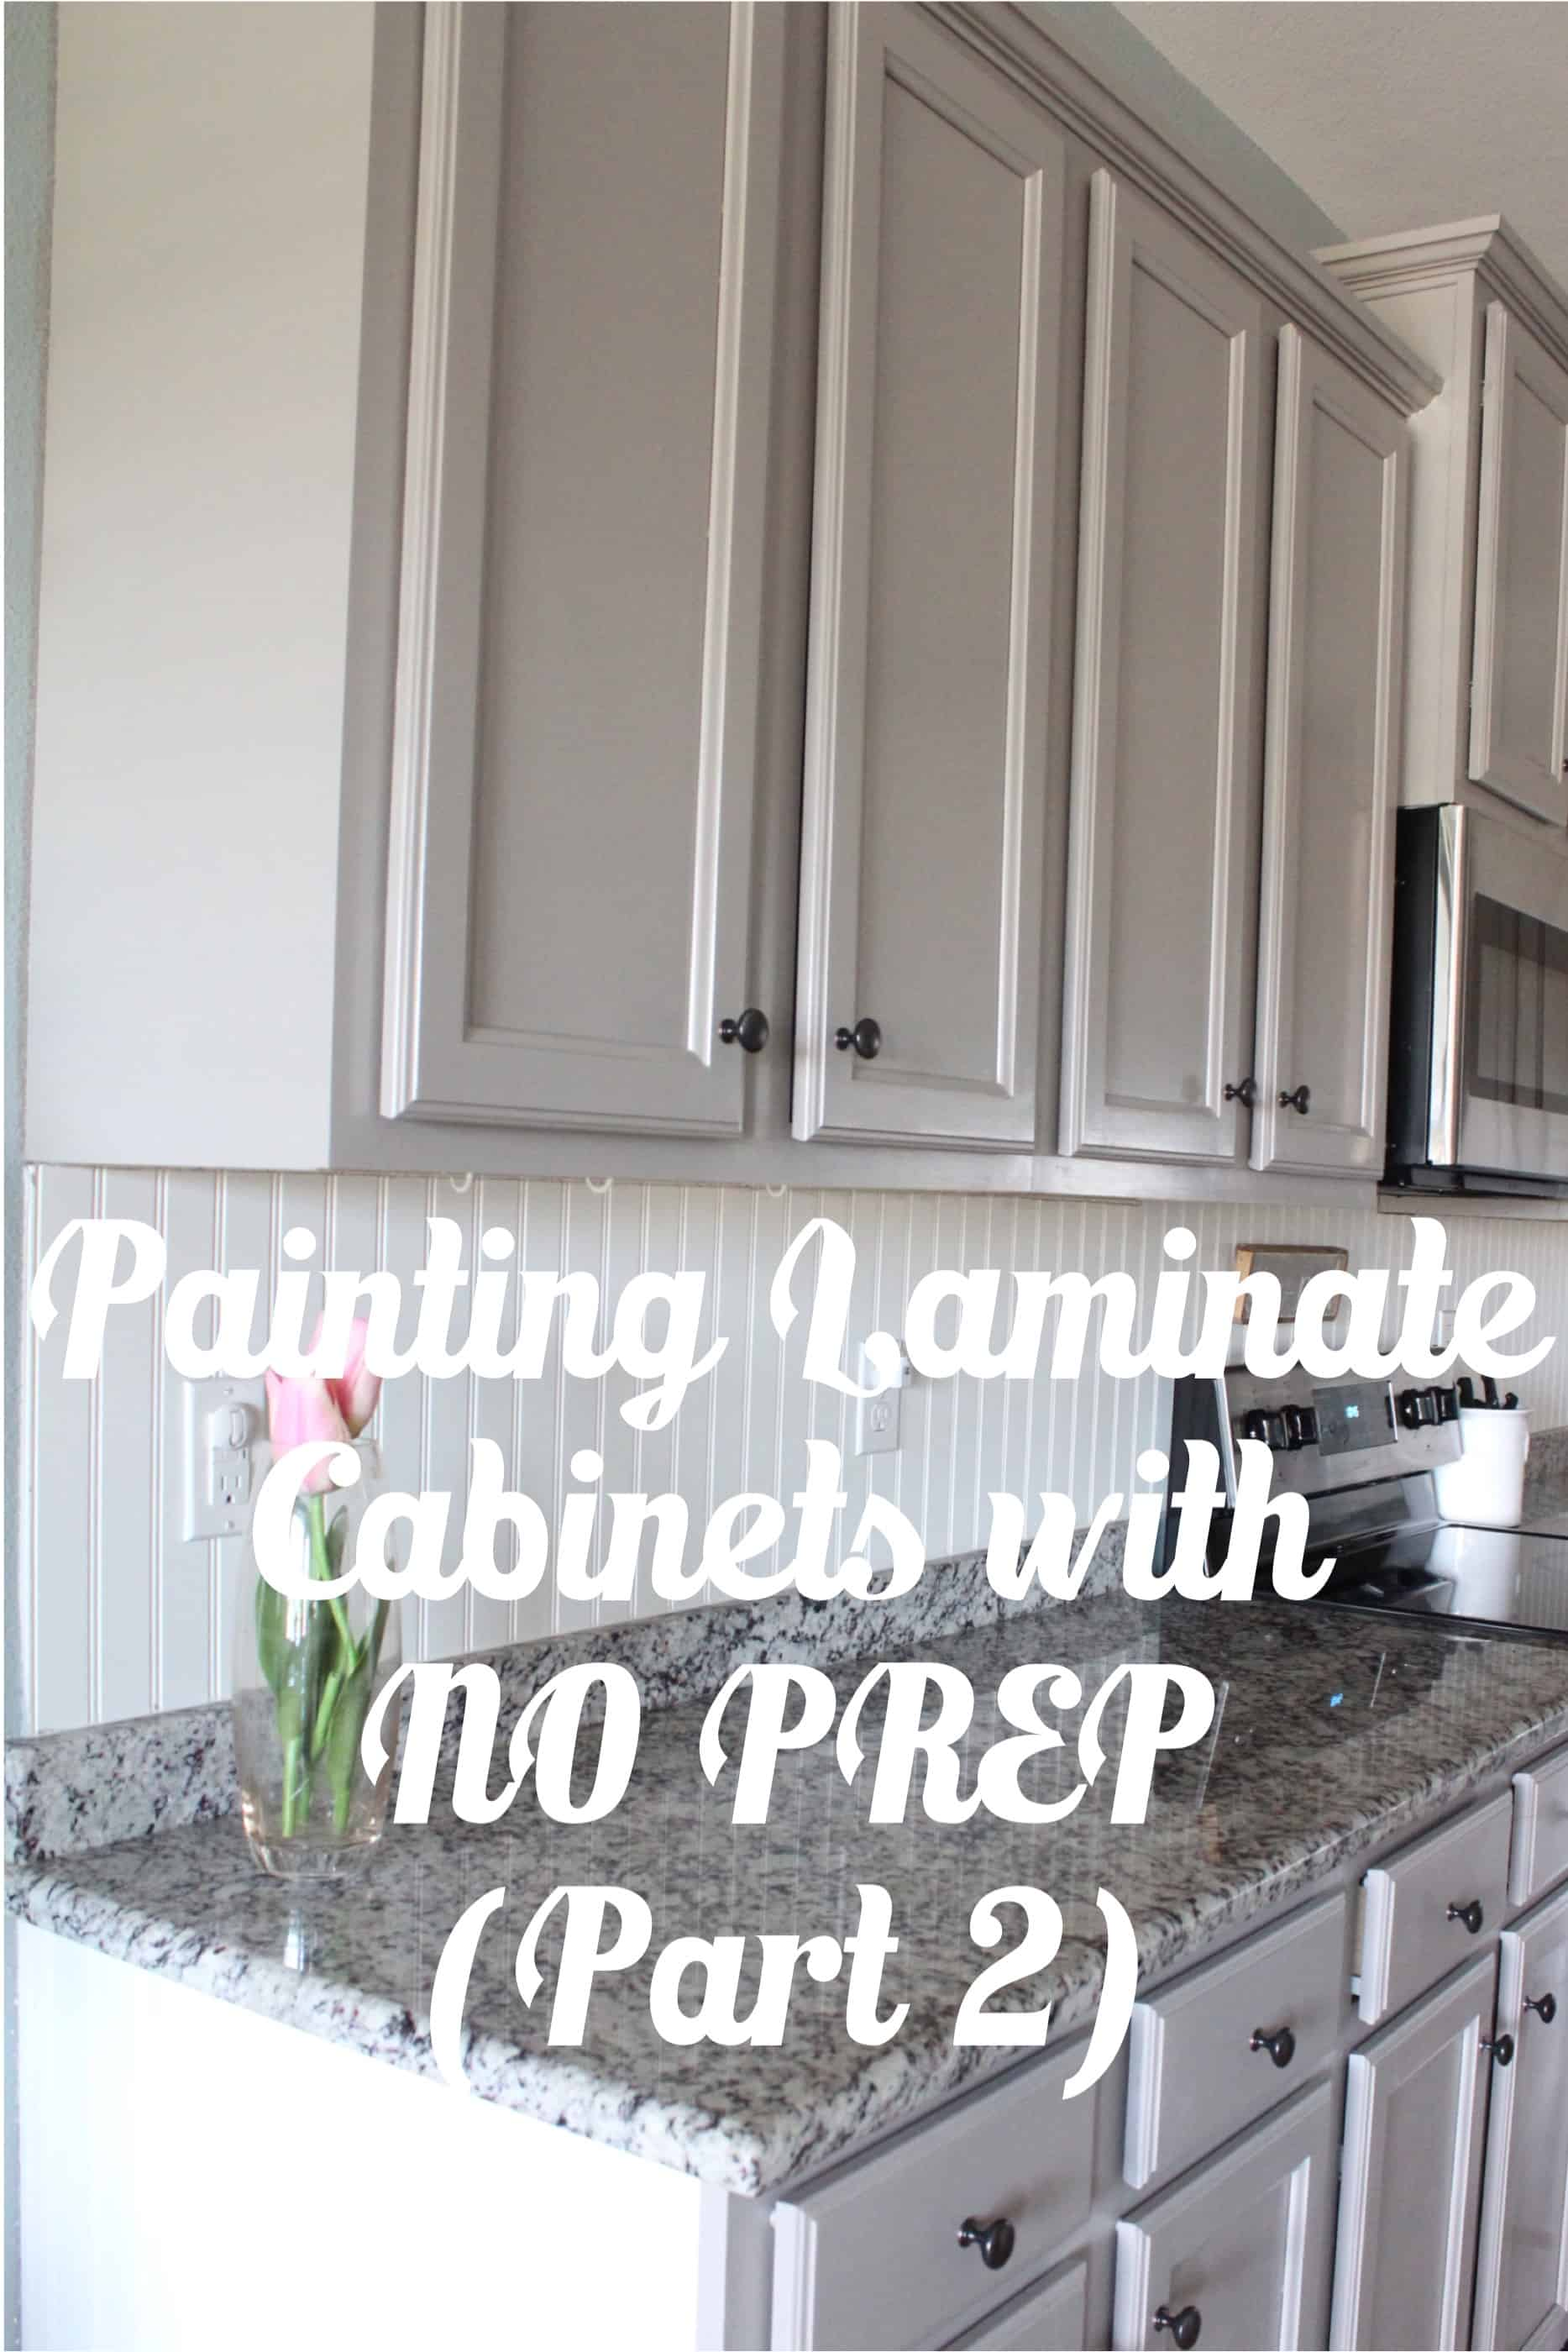 Painting Laminate Cabinets With No Prep Work Part 2